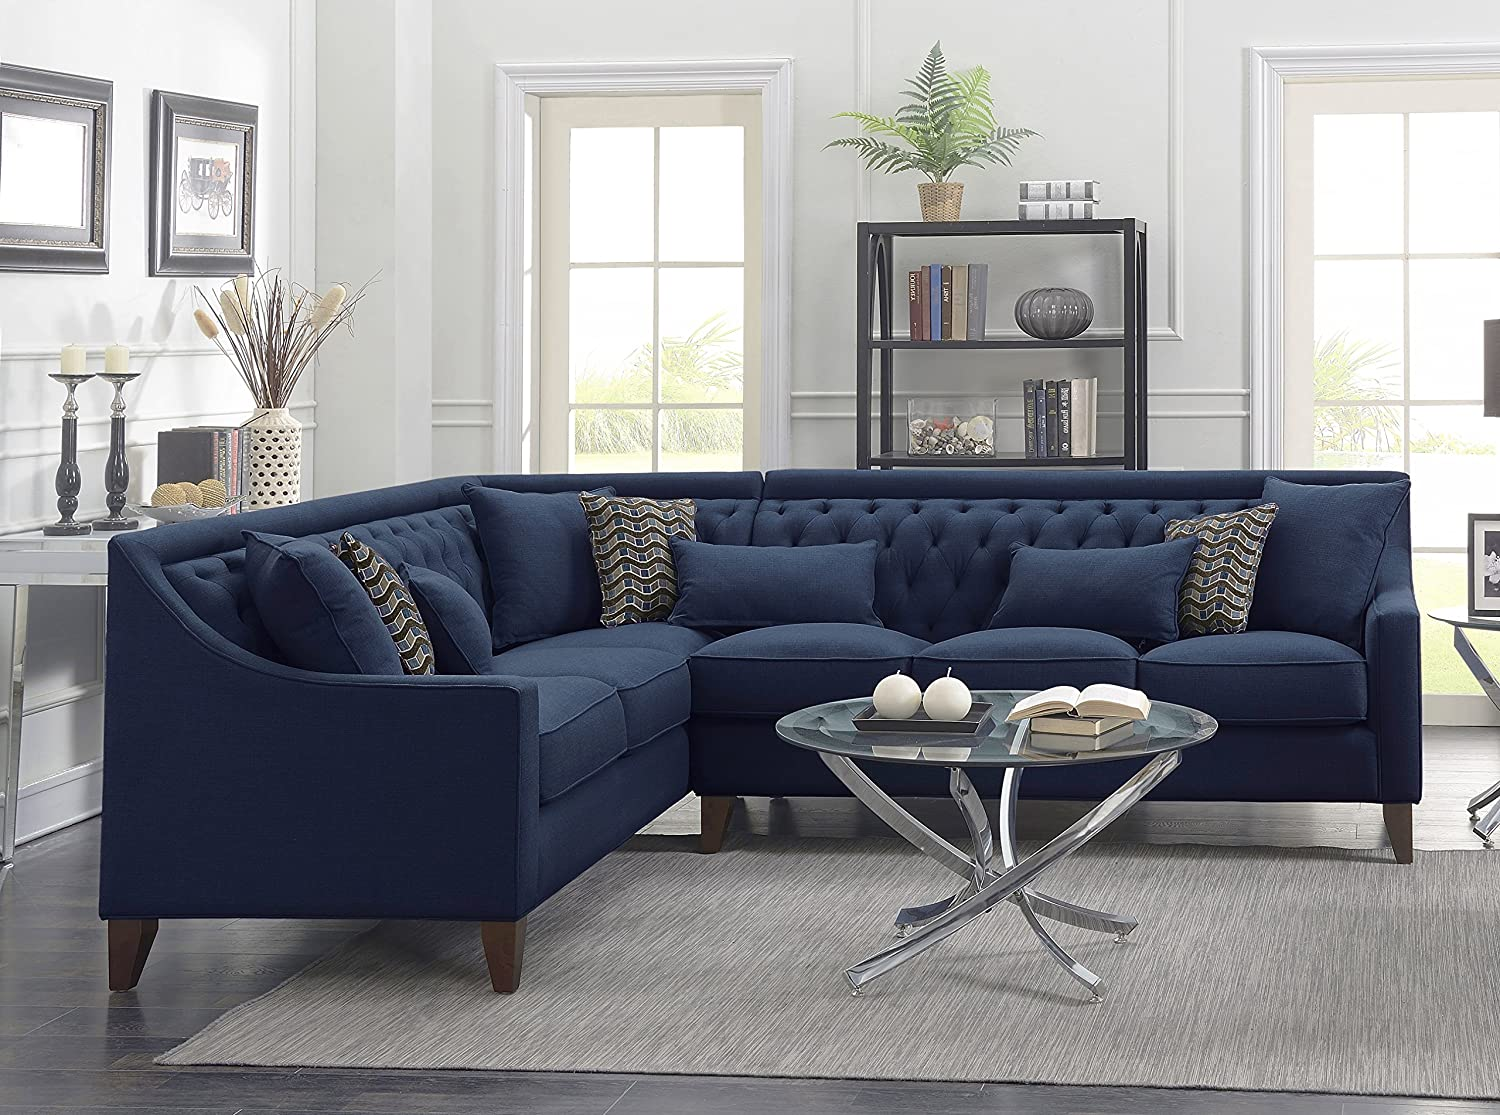 Iconic Home Aberdeen Linen Tufted Down Mix Modern Contemporary Left Facing Sectional Sofa, Navy